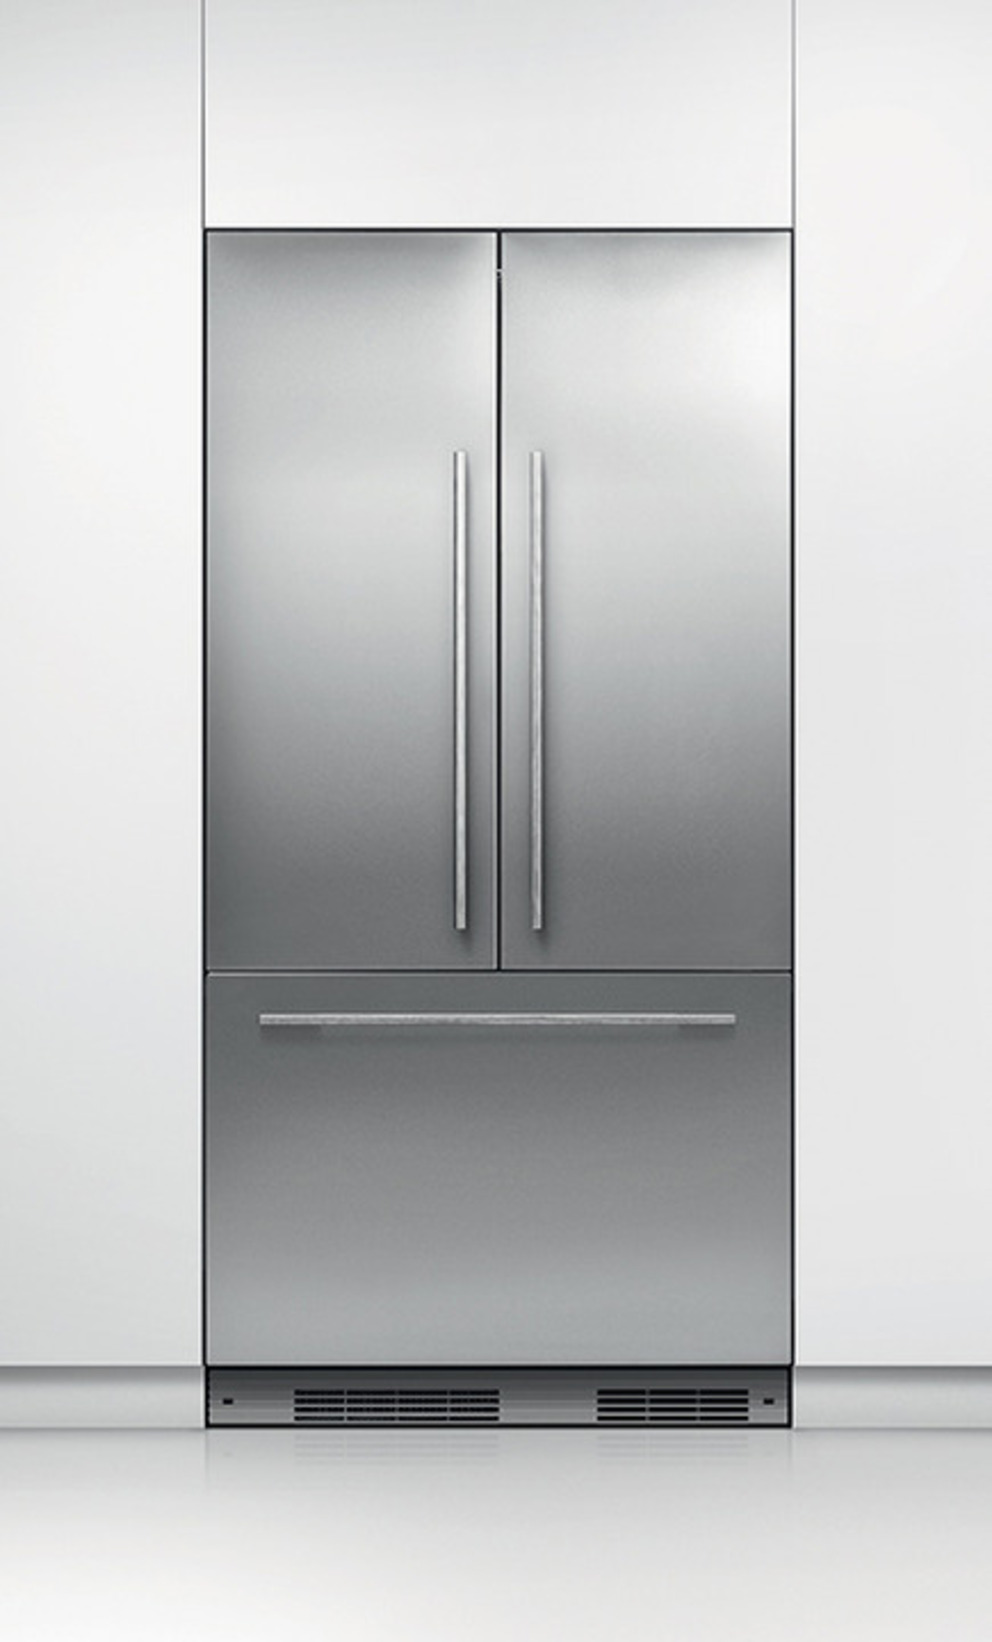 Réfrigérateurs Fisher&Paykel RS36A72J1 + RD3672 (72'' F&P)